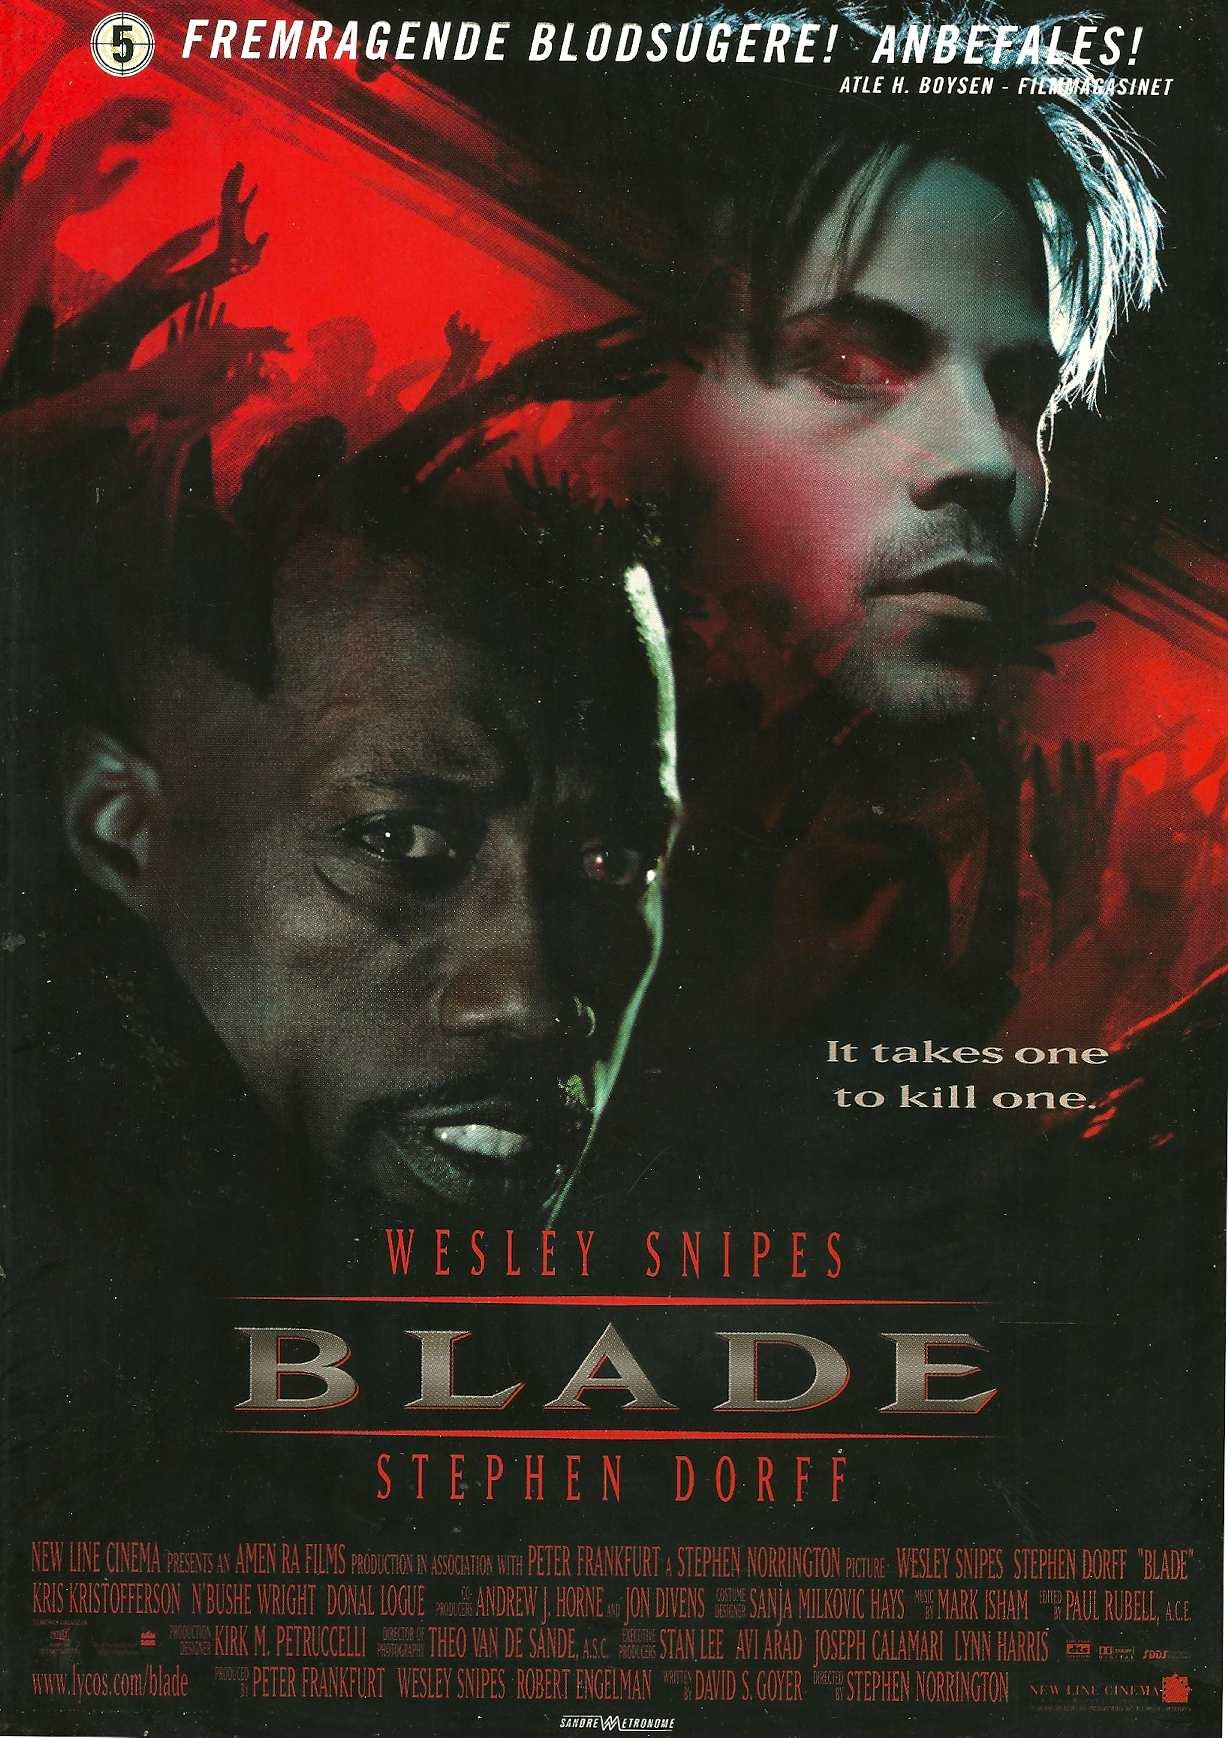 Blade With Wesley Snipes Stephen Dorff Poster Of The Movie Blade With On The Back File About This Movie New Line Cinema Amazon Com Books